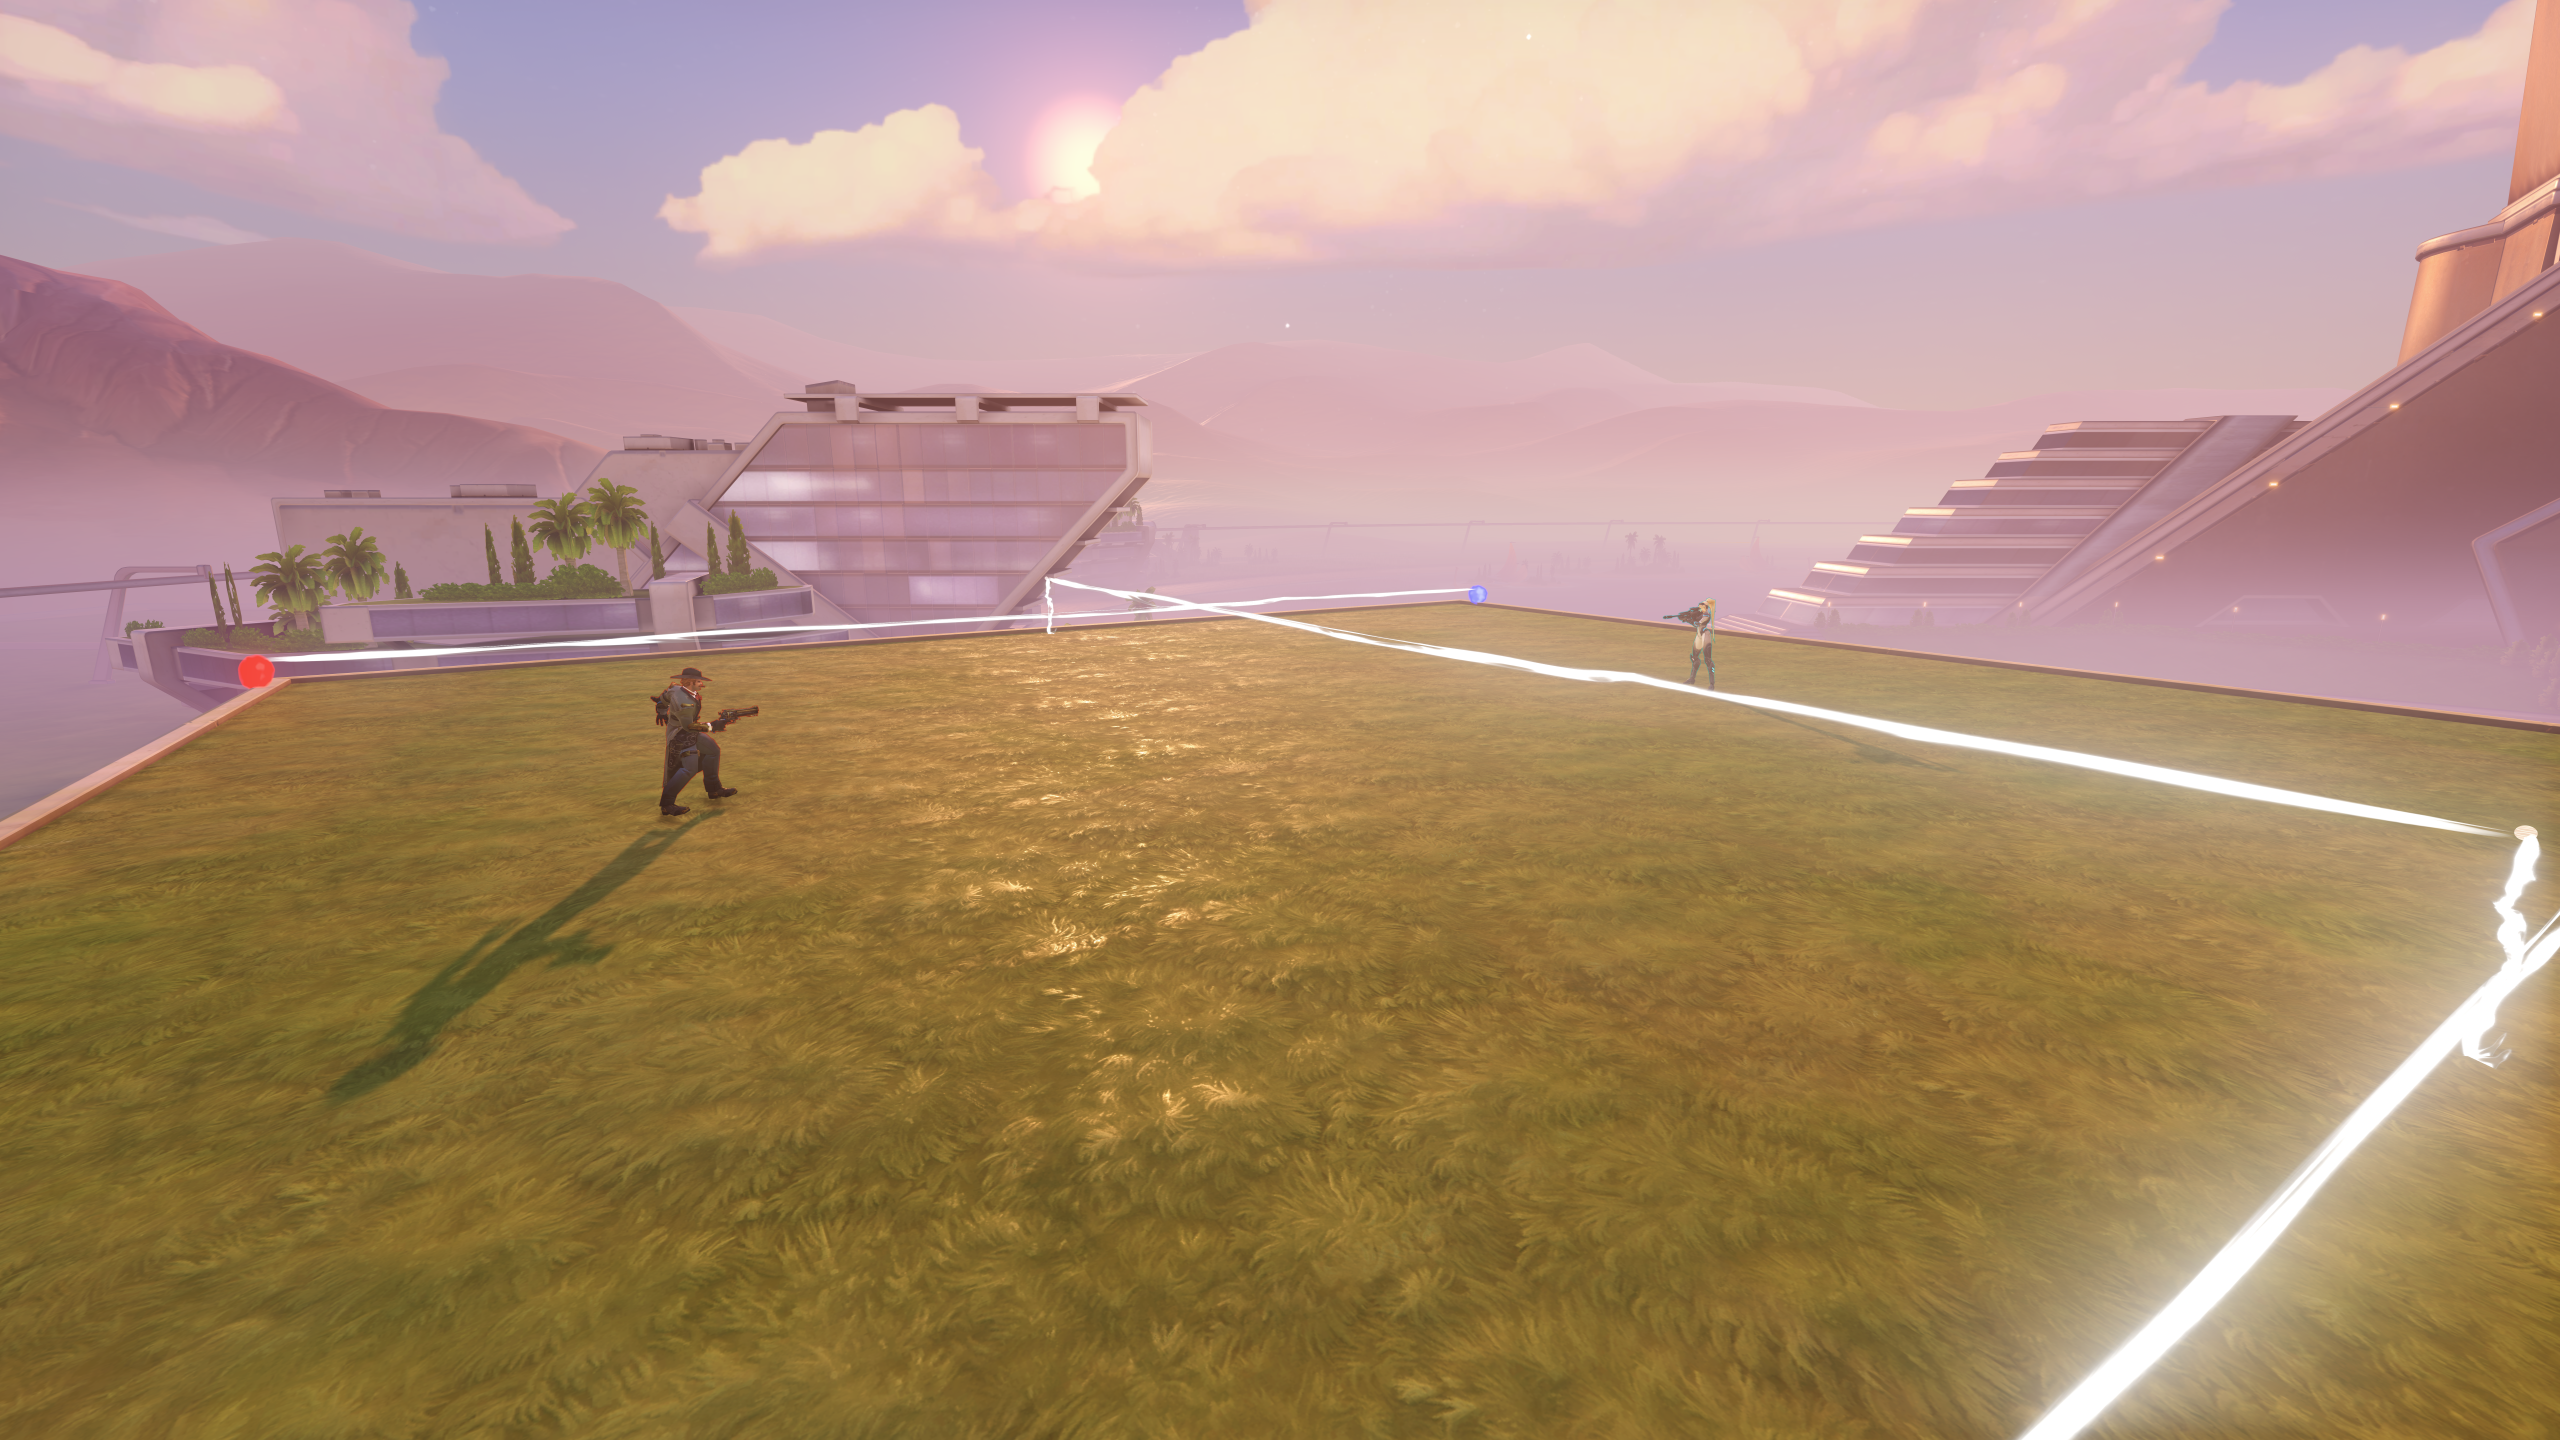 Thumbnail for [PRESET] Sports Field